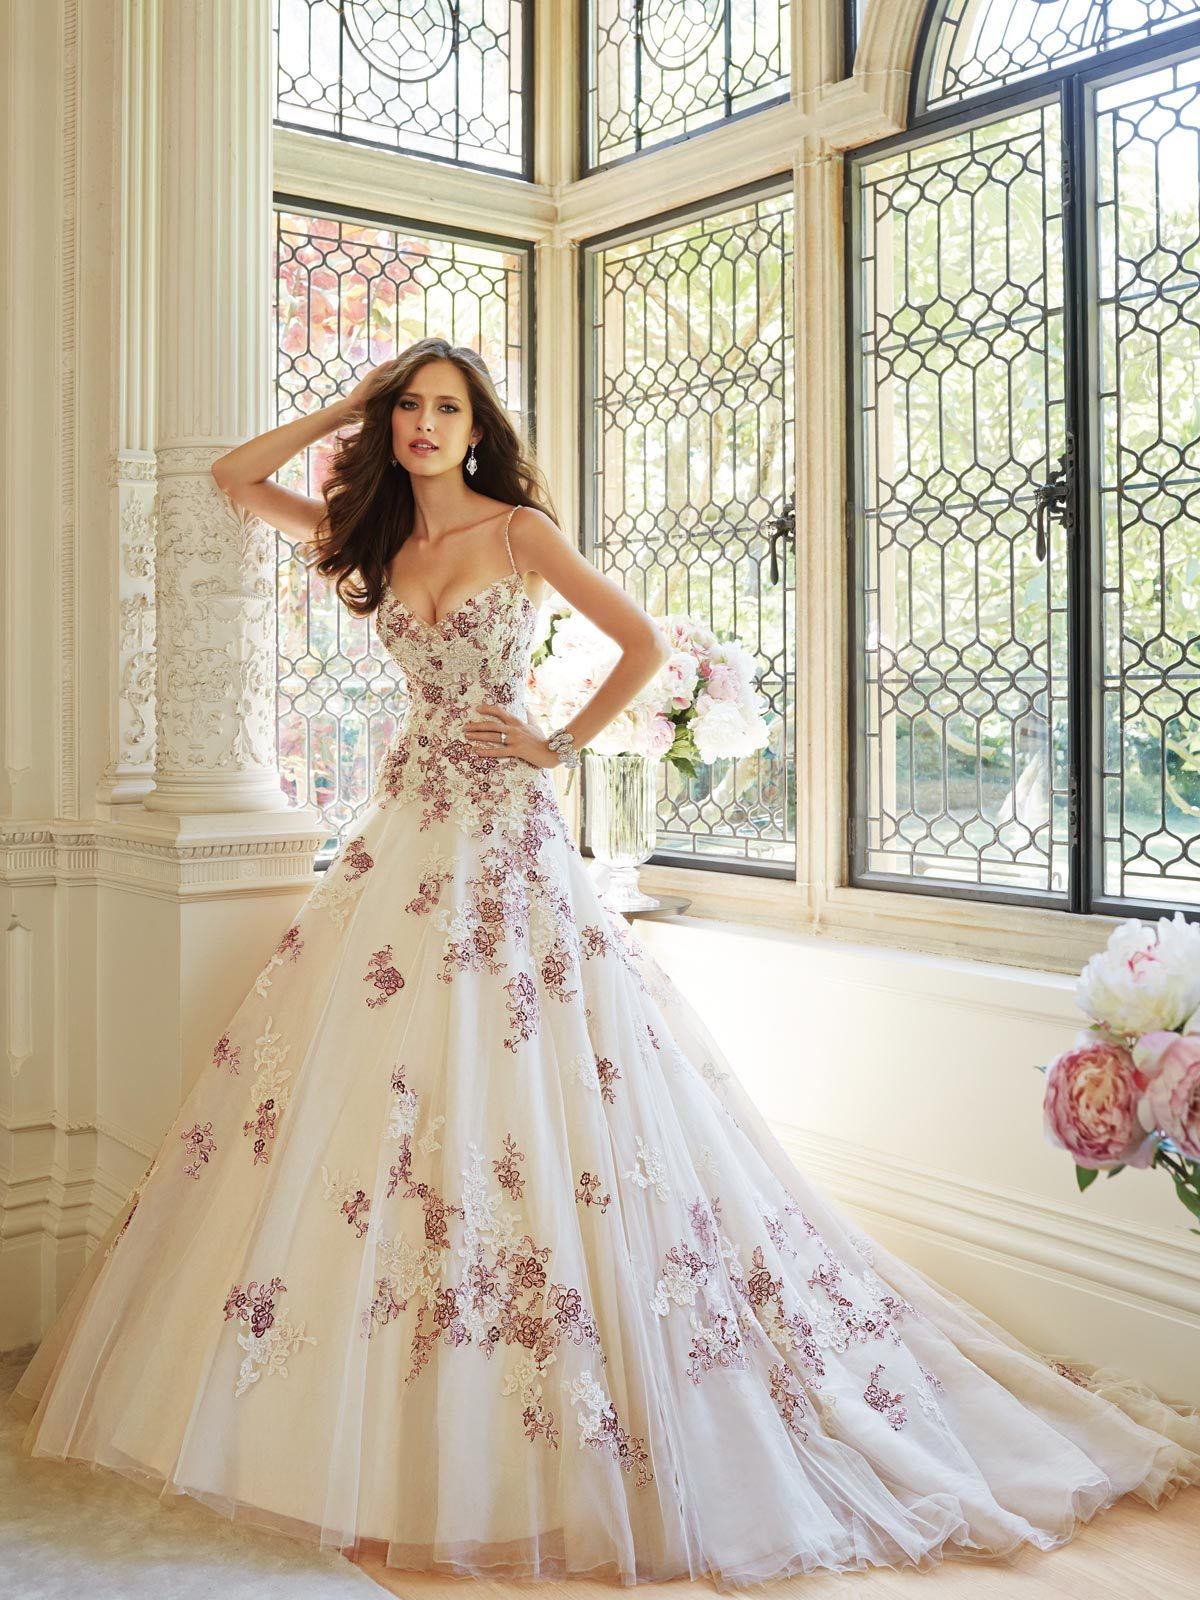 7 Unique Style Tips To Add To Your Classic Wedding Dress Amanda Douglas Events